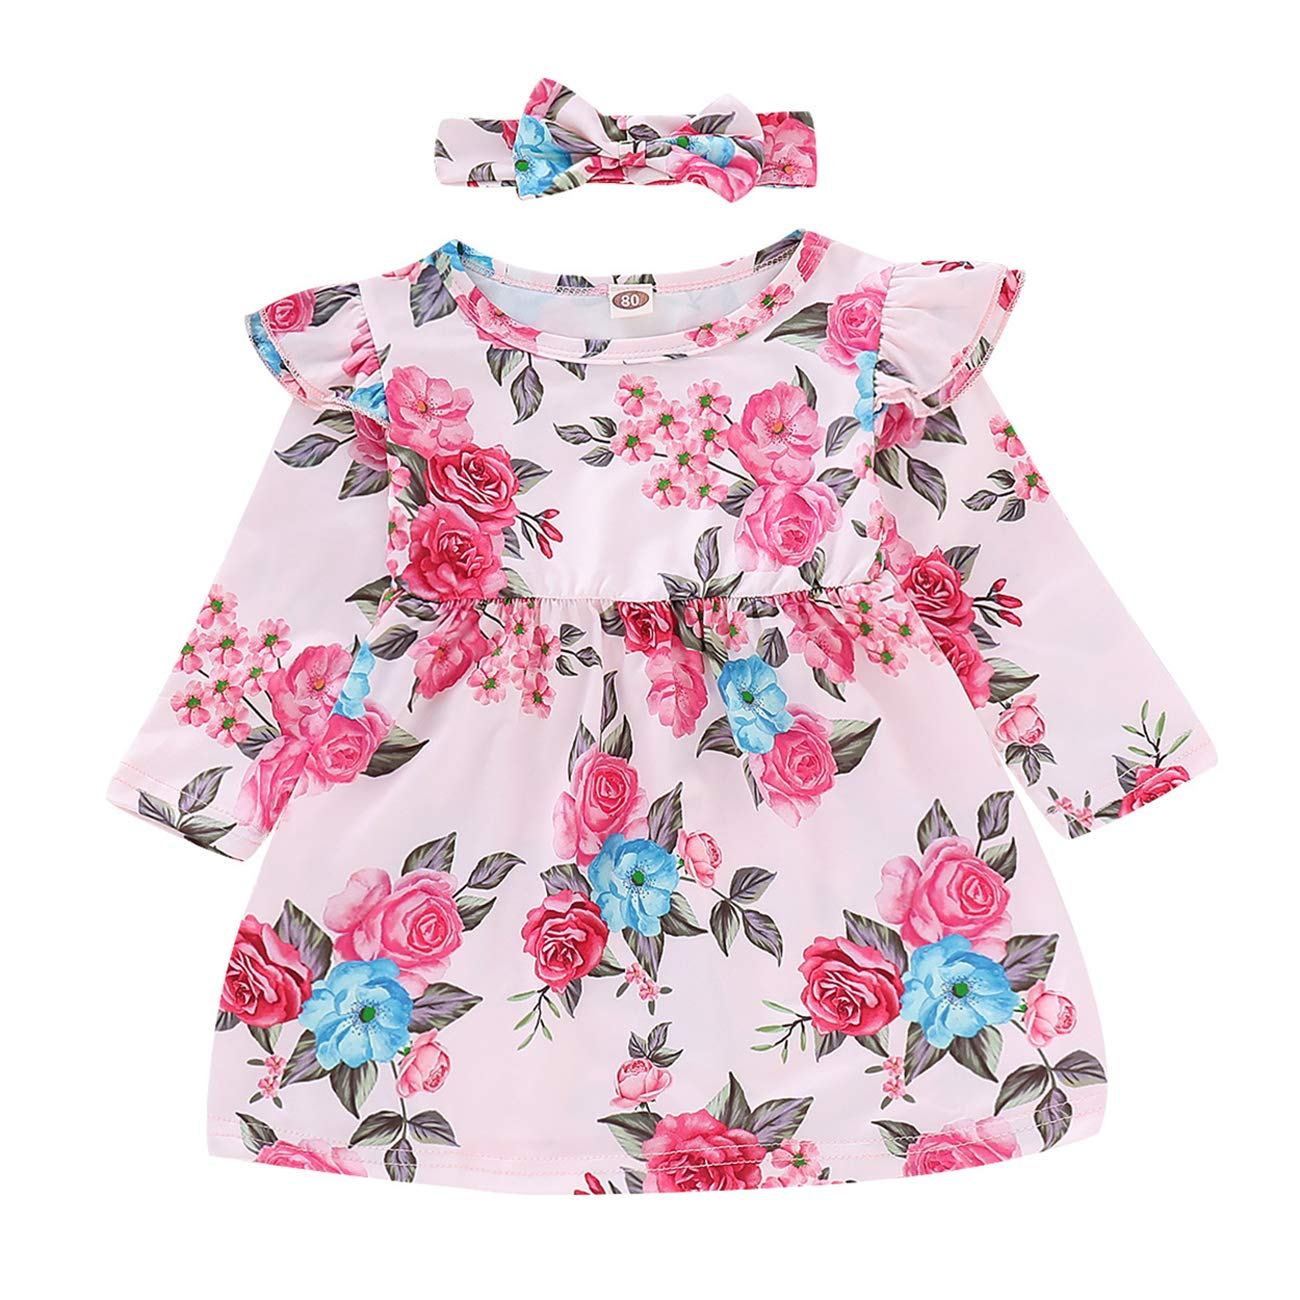 FCQNY Kid Baby Girls Long Sleeve Pink Floral A-line Casual Pleated Dress+Headband